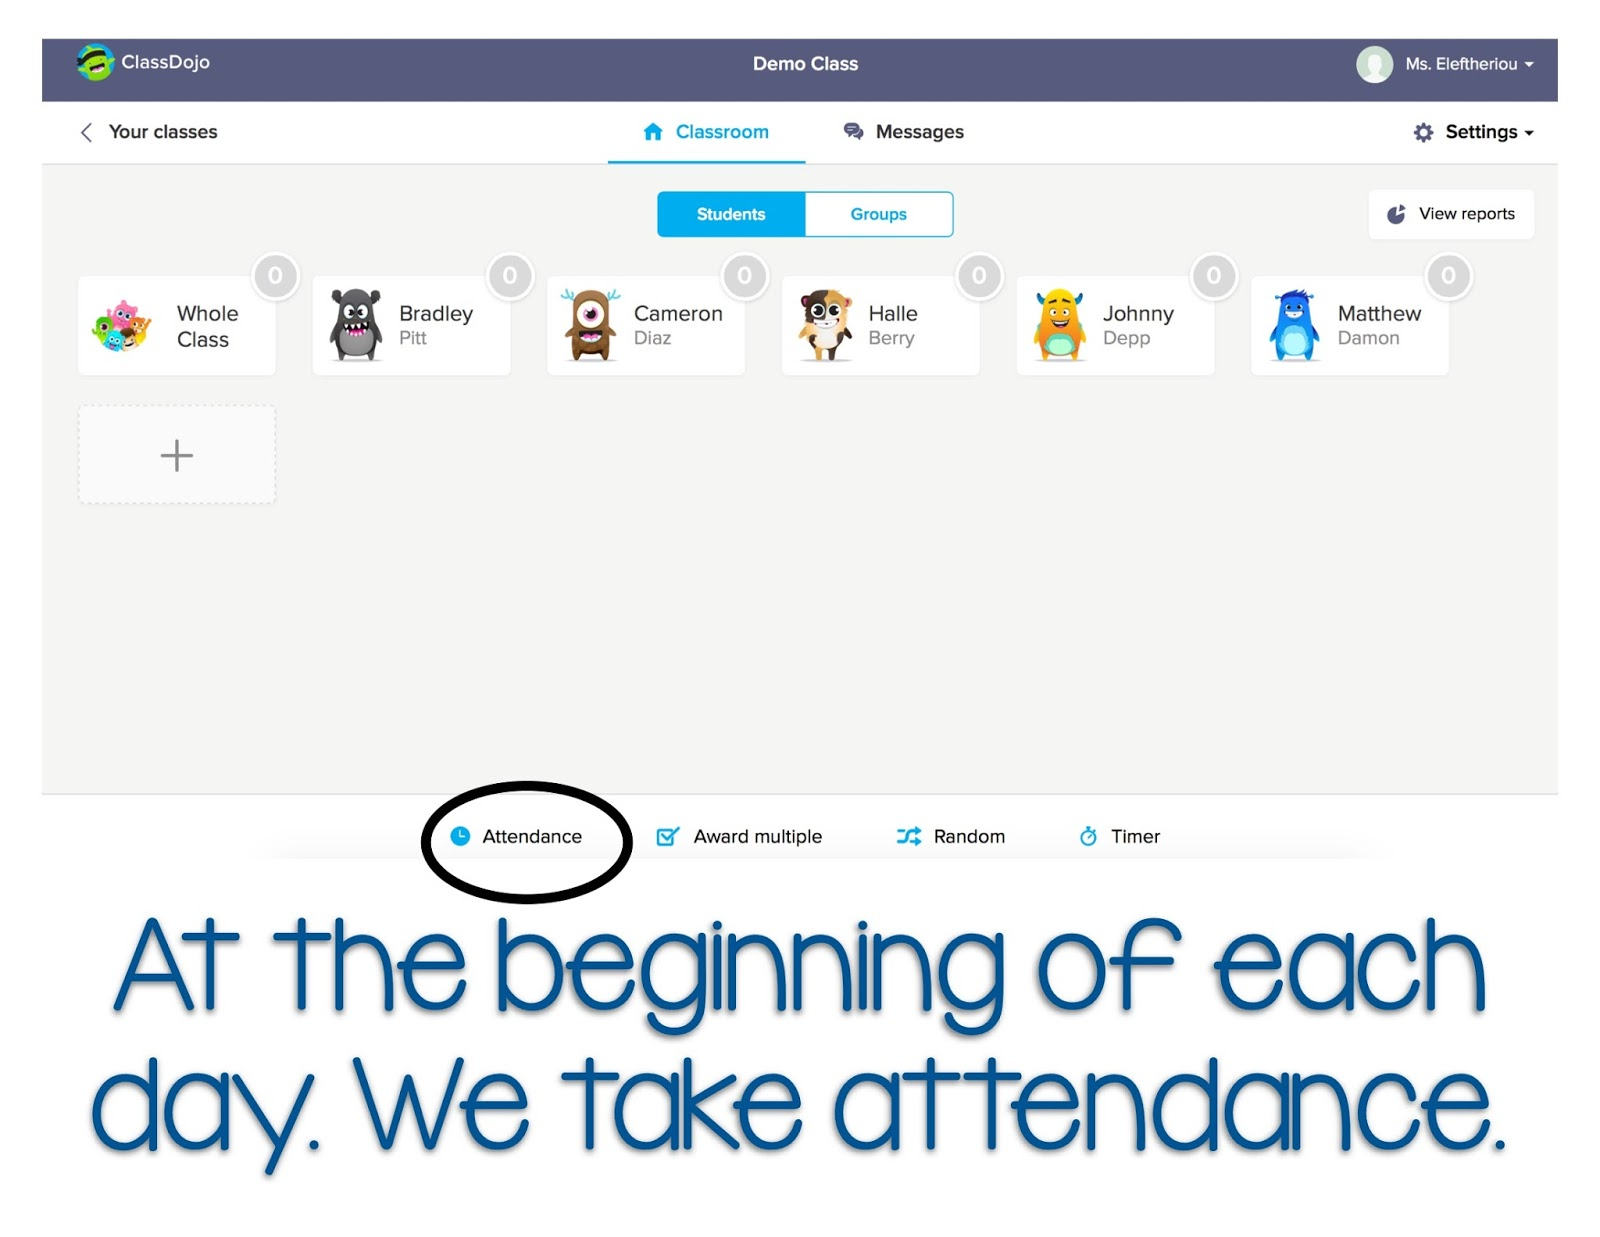 how to make a classdojo for students